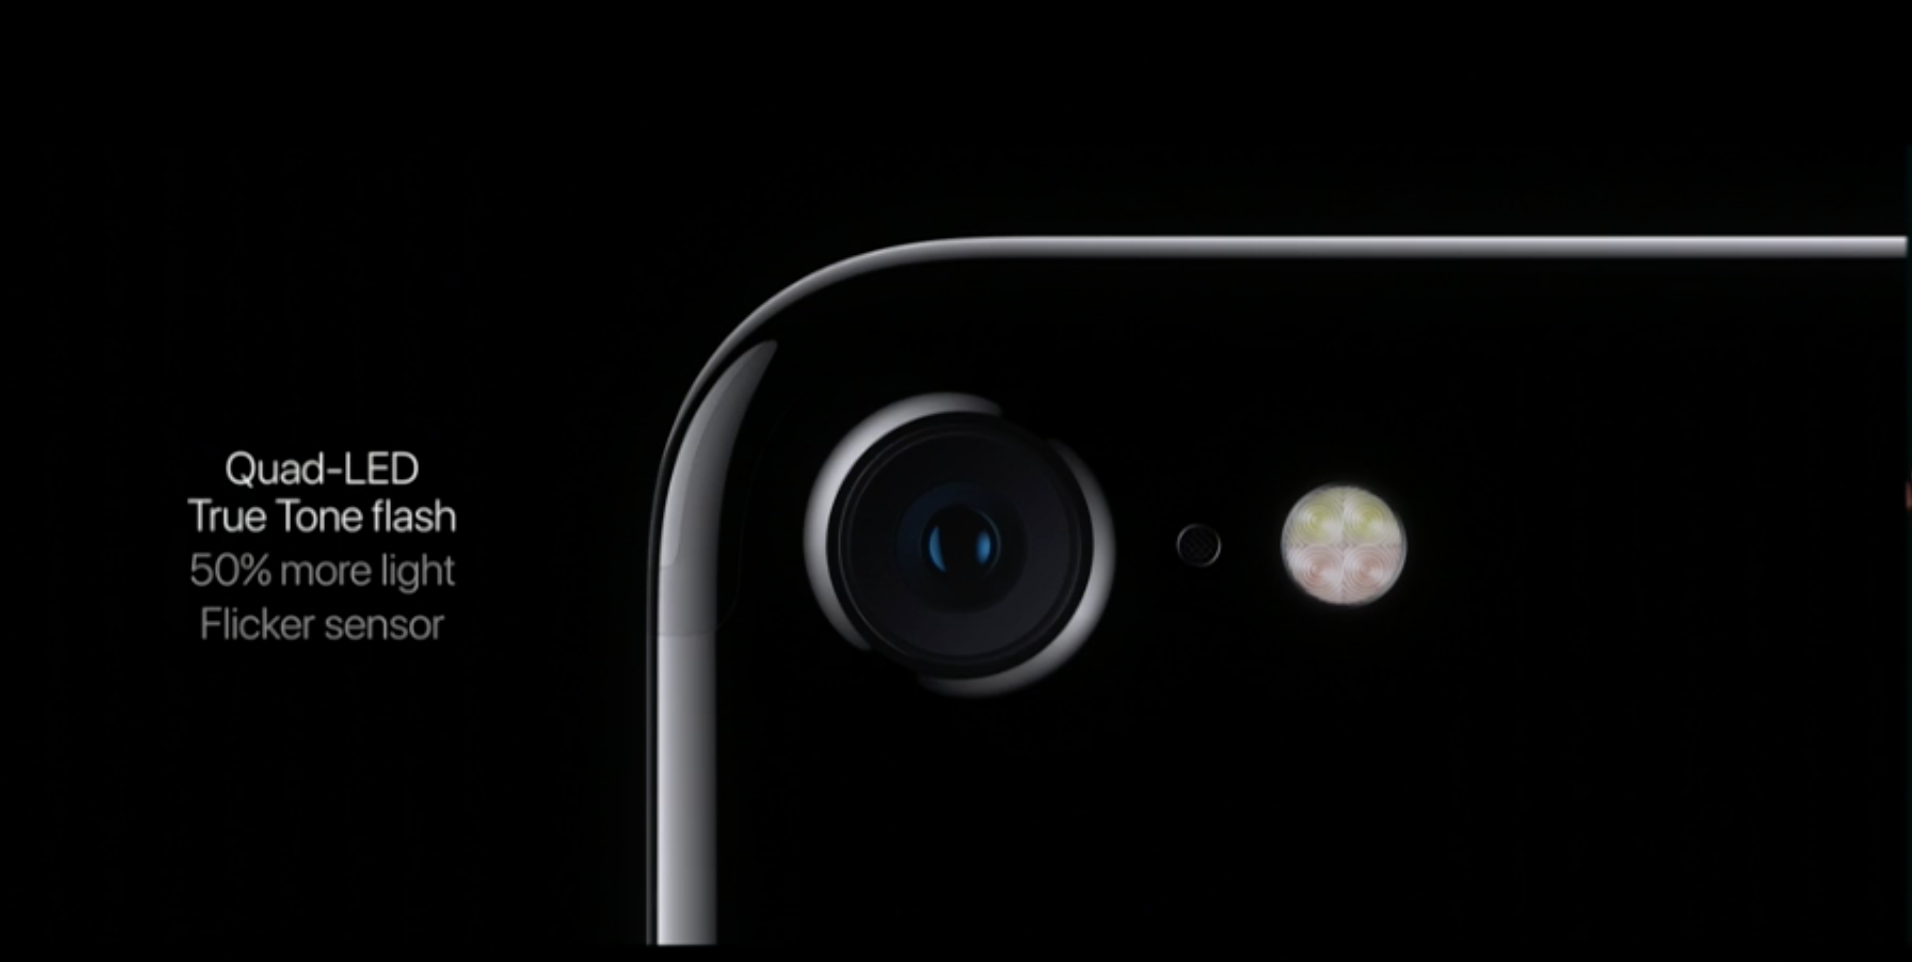 The iPhone 7's rear camera.